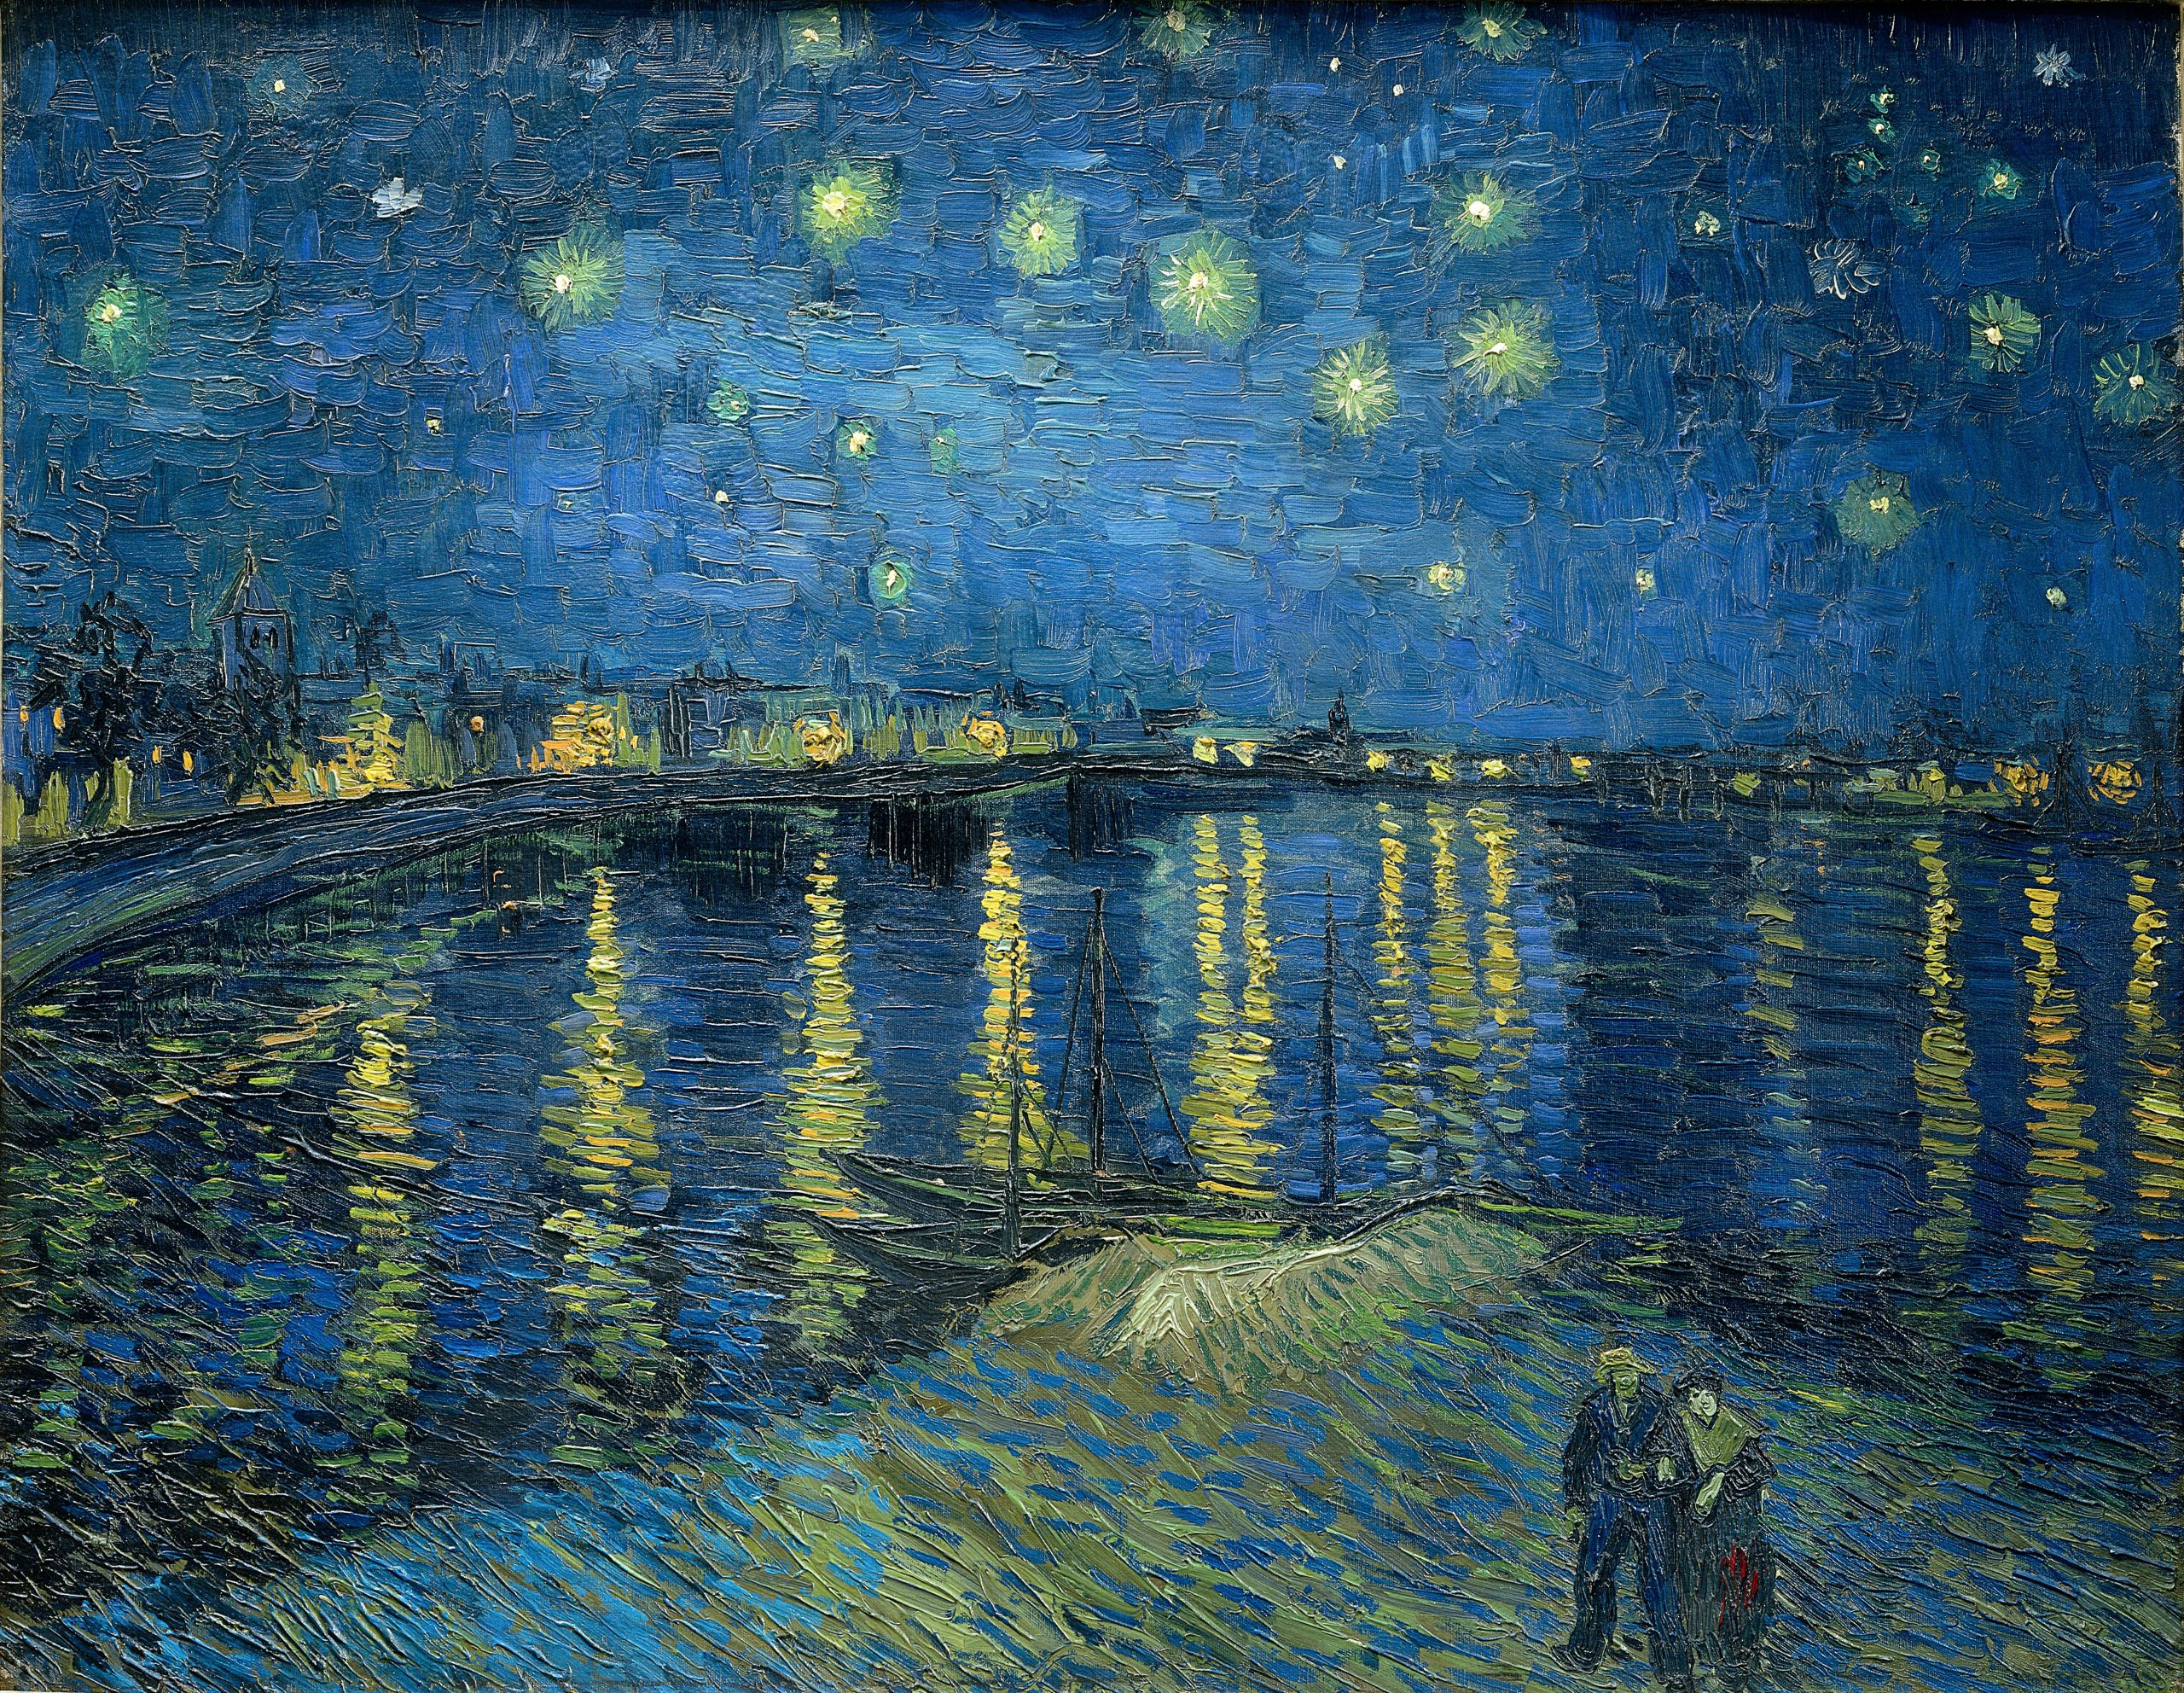 Starry Night Over the Rhone by Vincent van Gogh captures how light can capture movement in a painting.